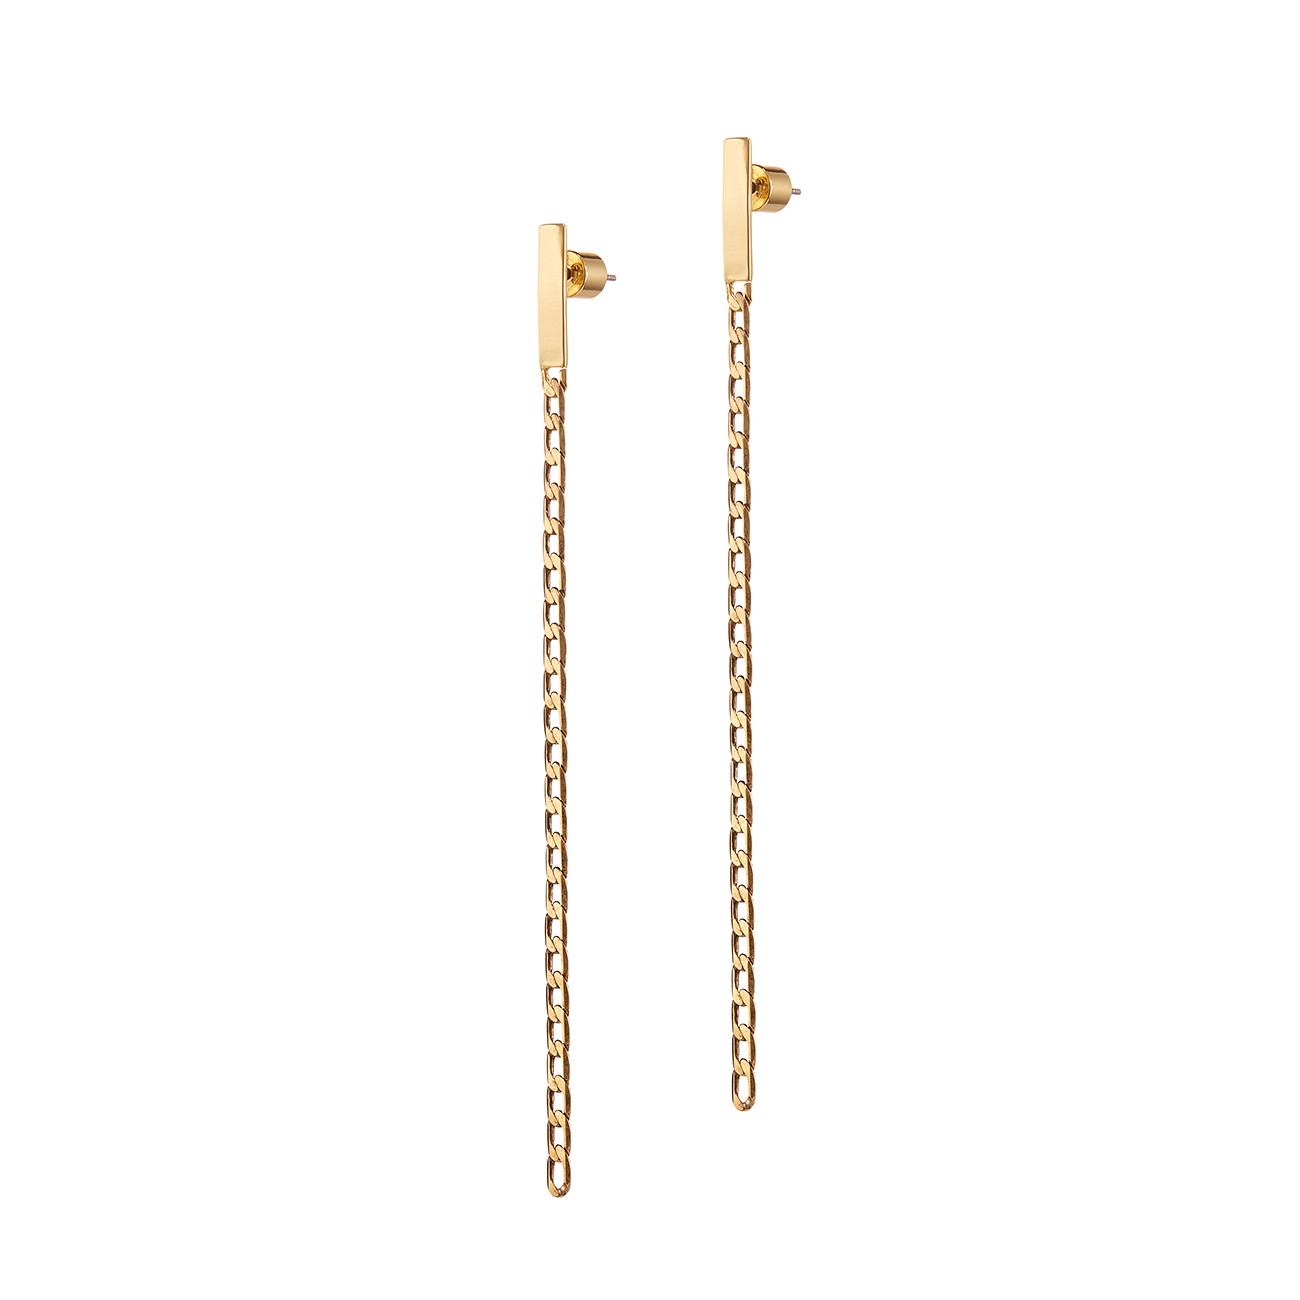 Gold long, narrow chain Beau Drops earrings by JENNY BIRD